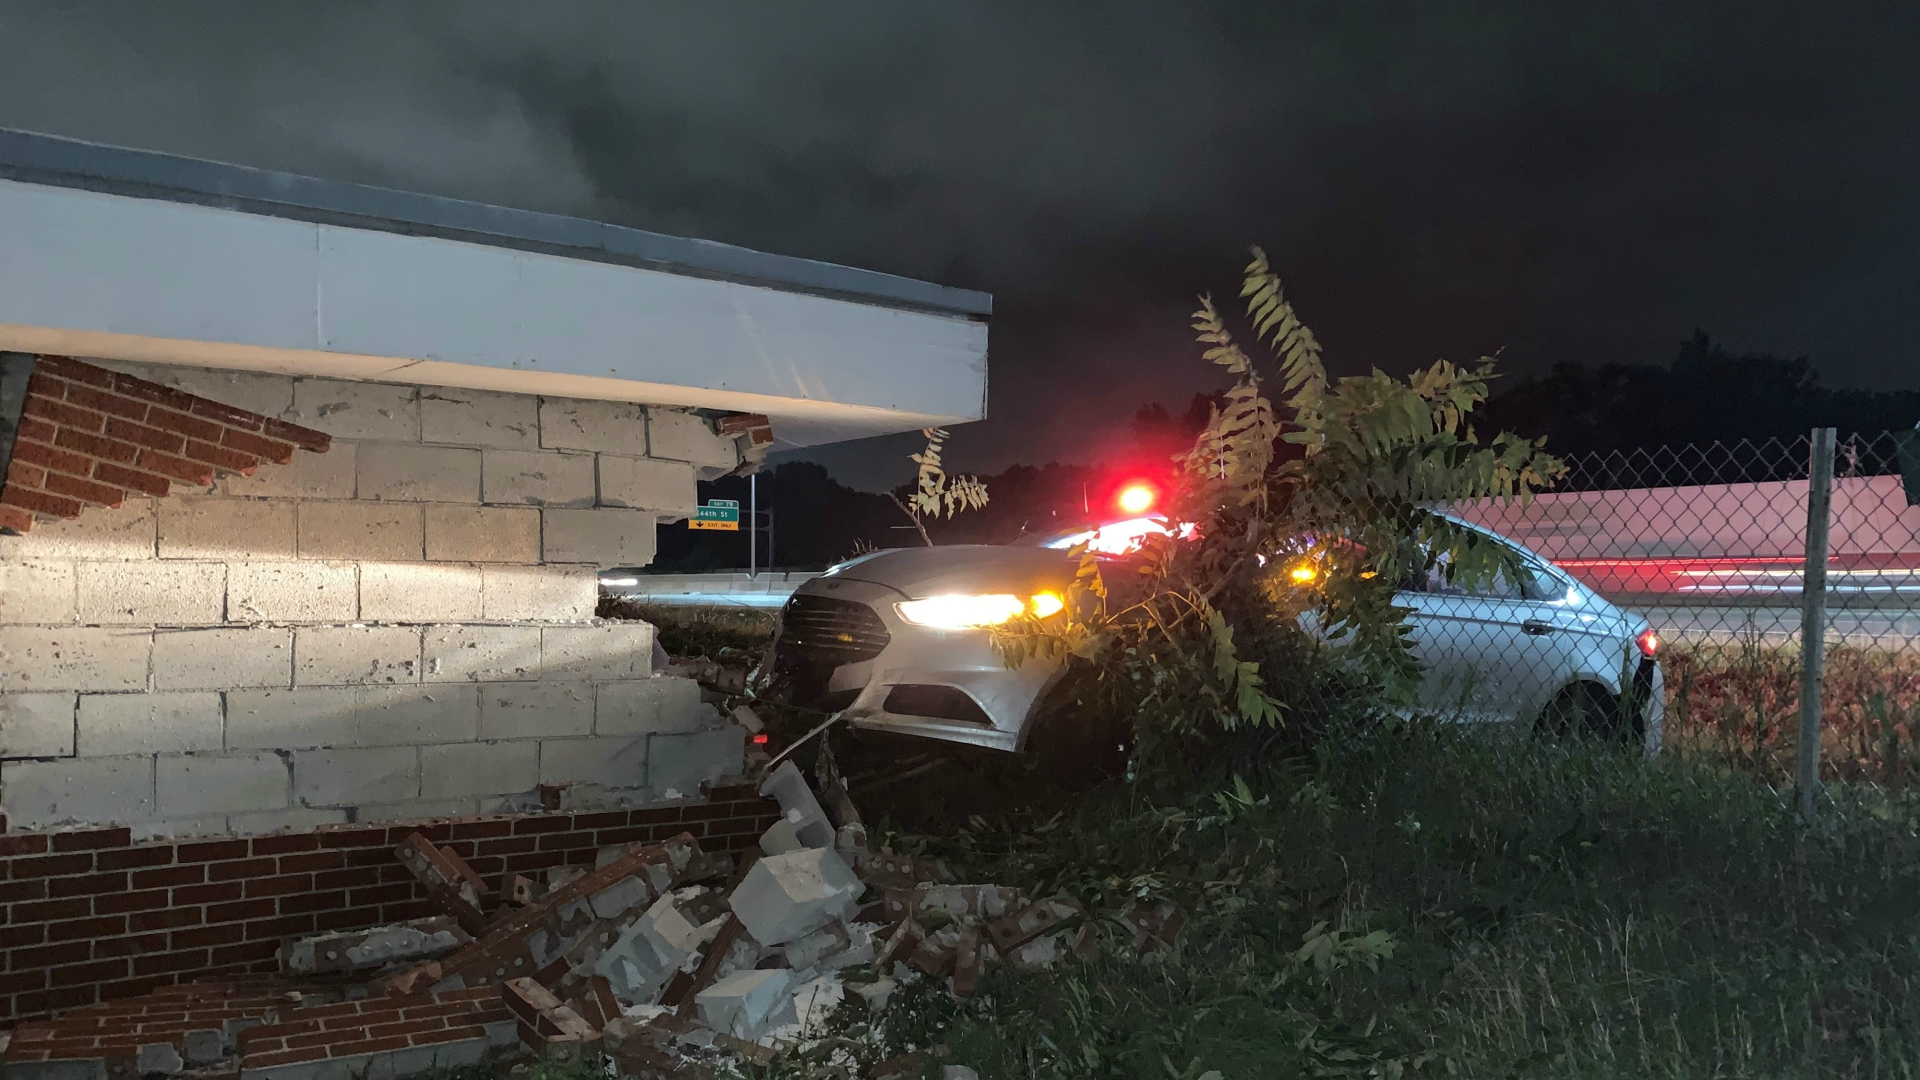 wyoming car into building